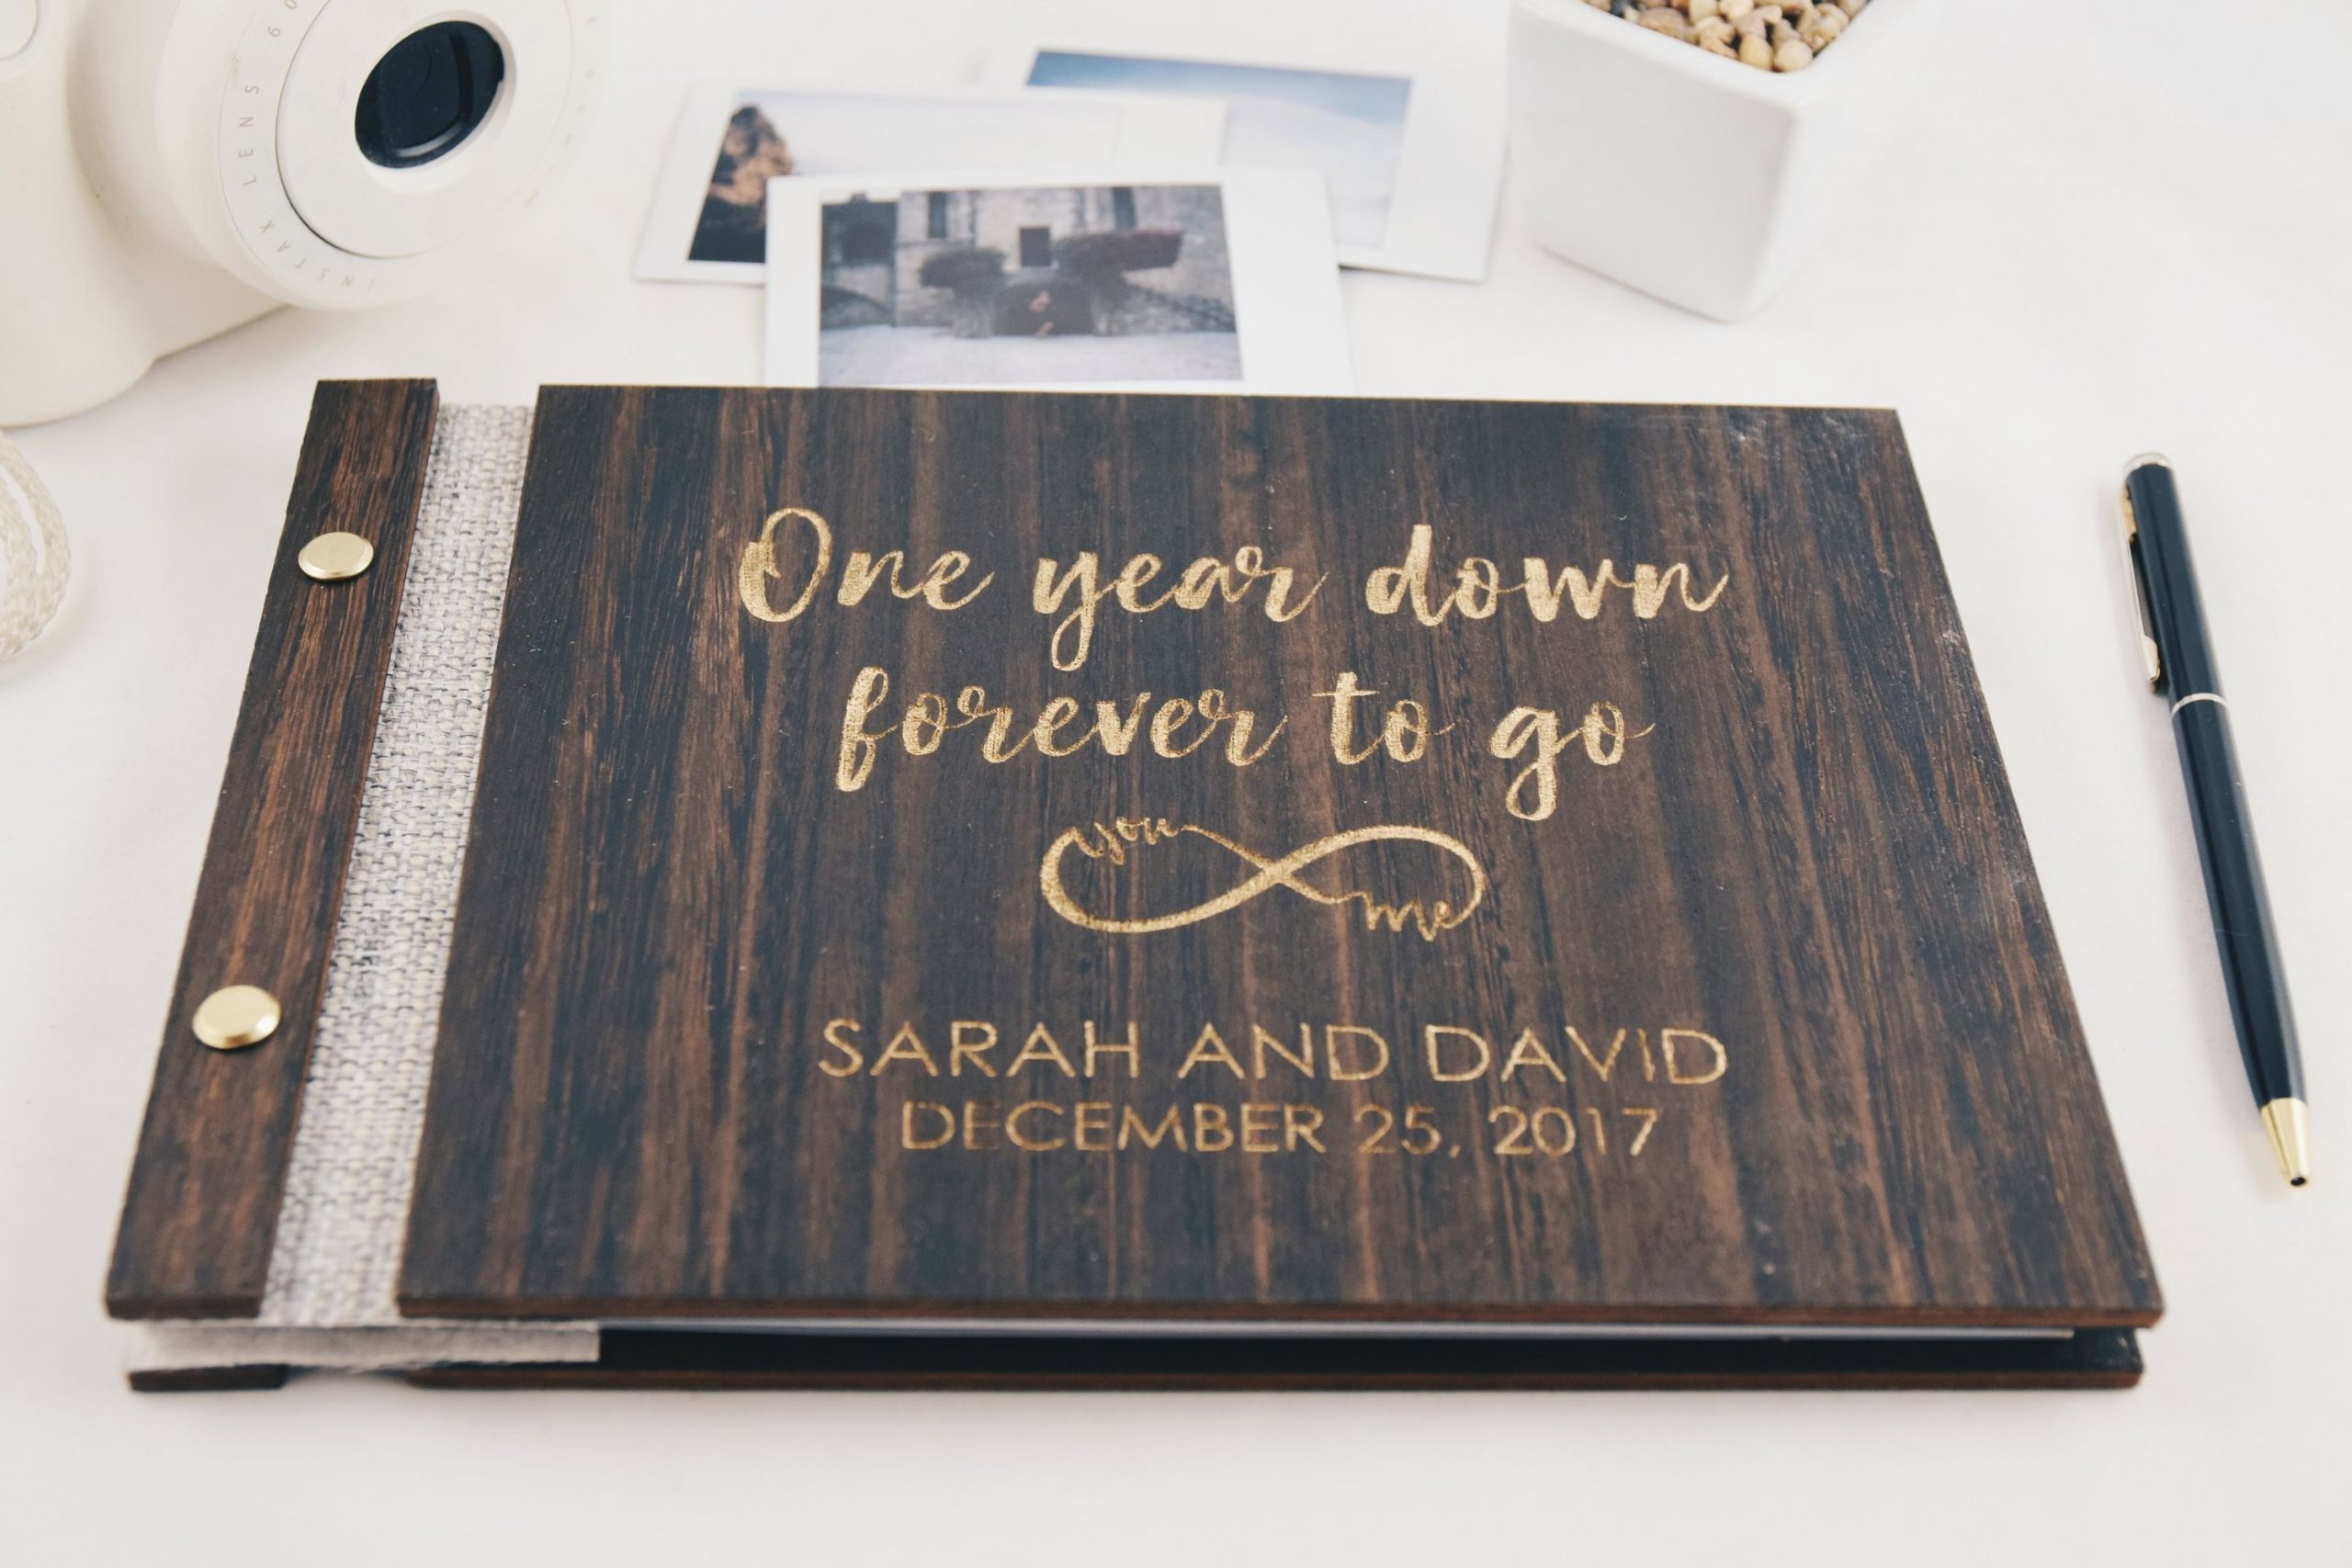 5 Year Anniversary Wood Gift Ideas  5 Year Anniversary Gift Ideas That Are Affordable And